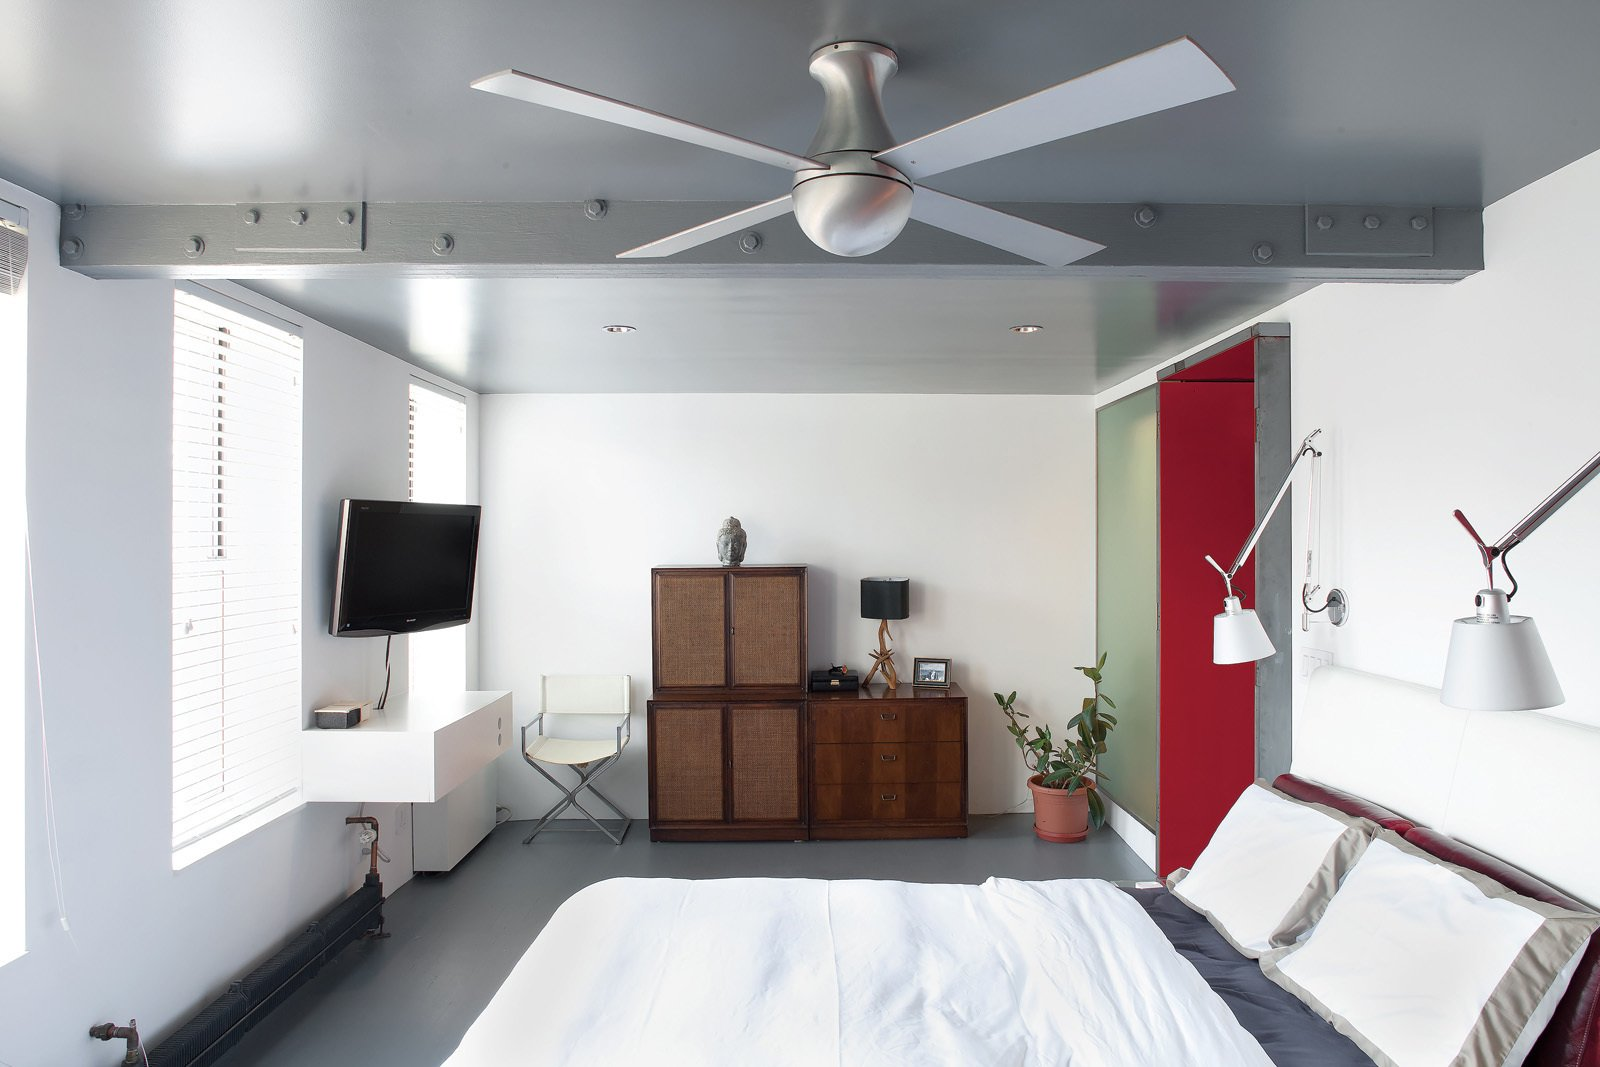 """Two-bedroom apartments are coveted in Manhattan, but the reality is that we are just two people, and the second bedroom had become neglected storage space,"" Fontanez says. Combining the two into one reaped big rewards. ""Now we wake up to a row of four windows and a variety of birds singing,"" Russell says.  Bedroom from Tunnel Vision"